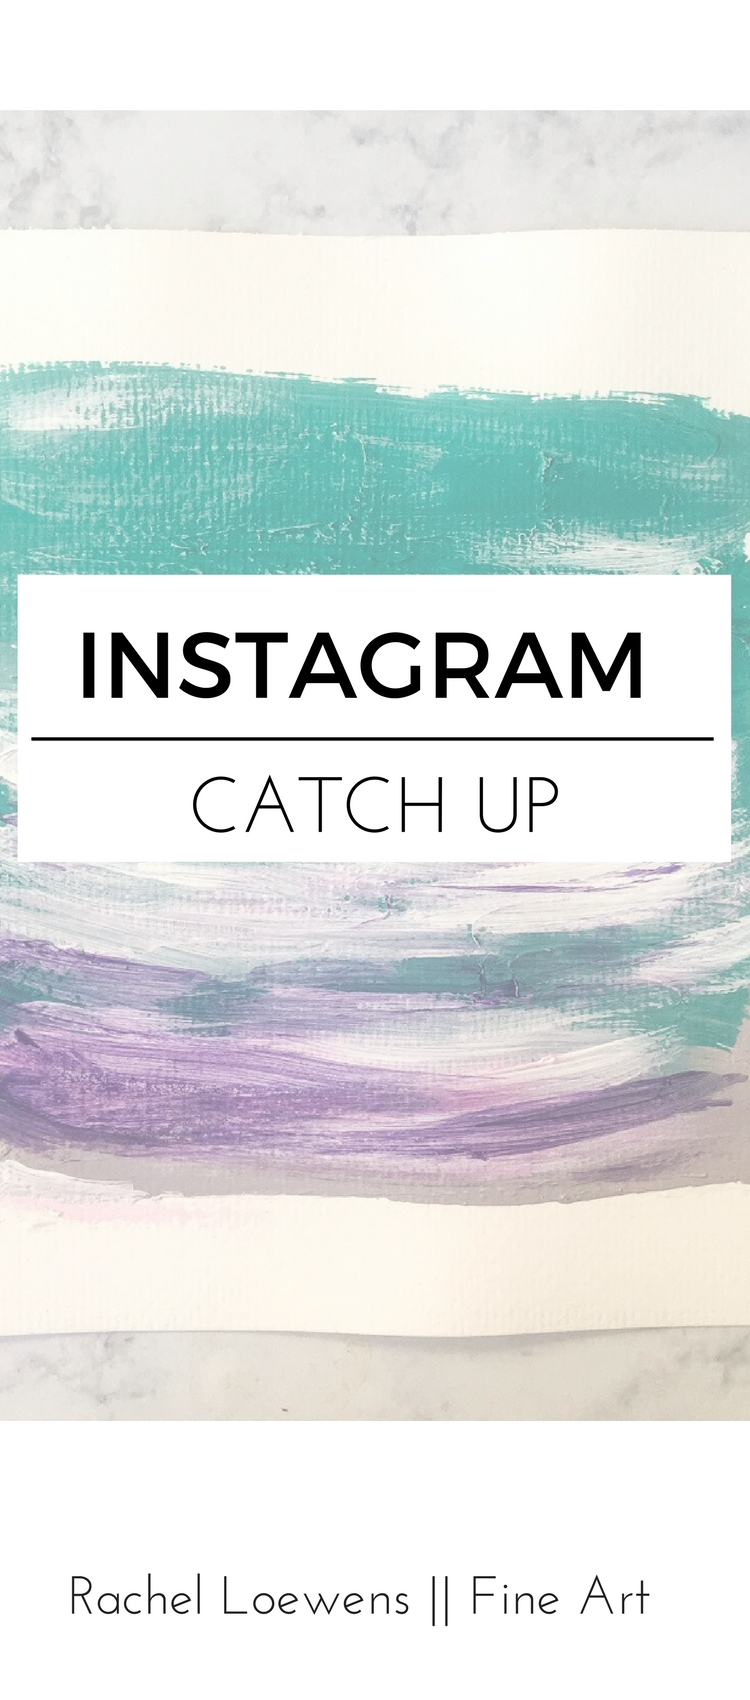 Instagram catch up